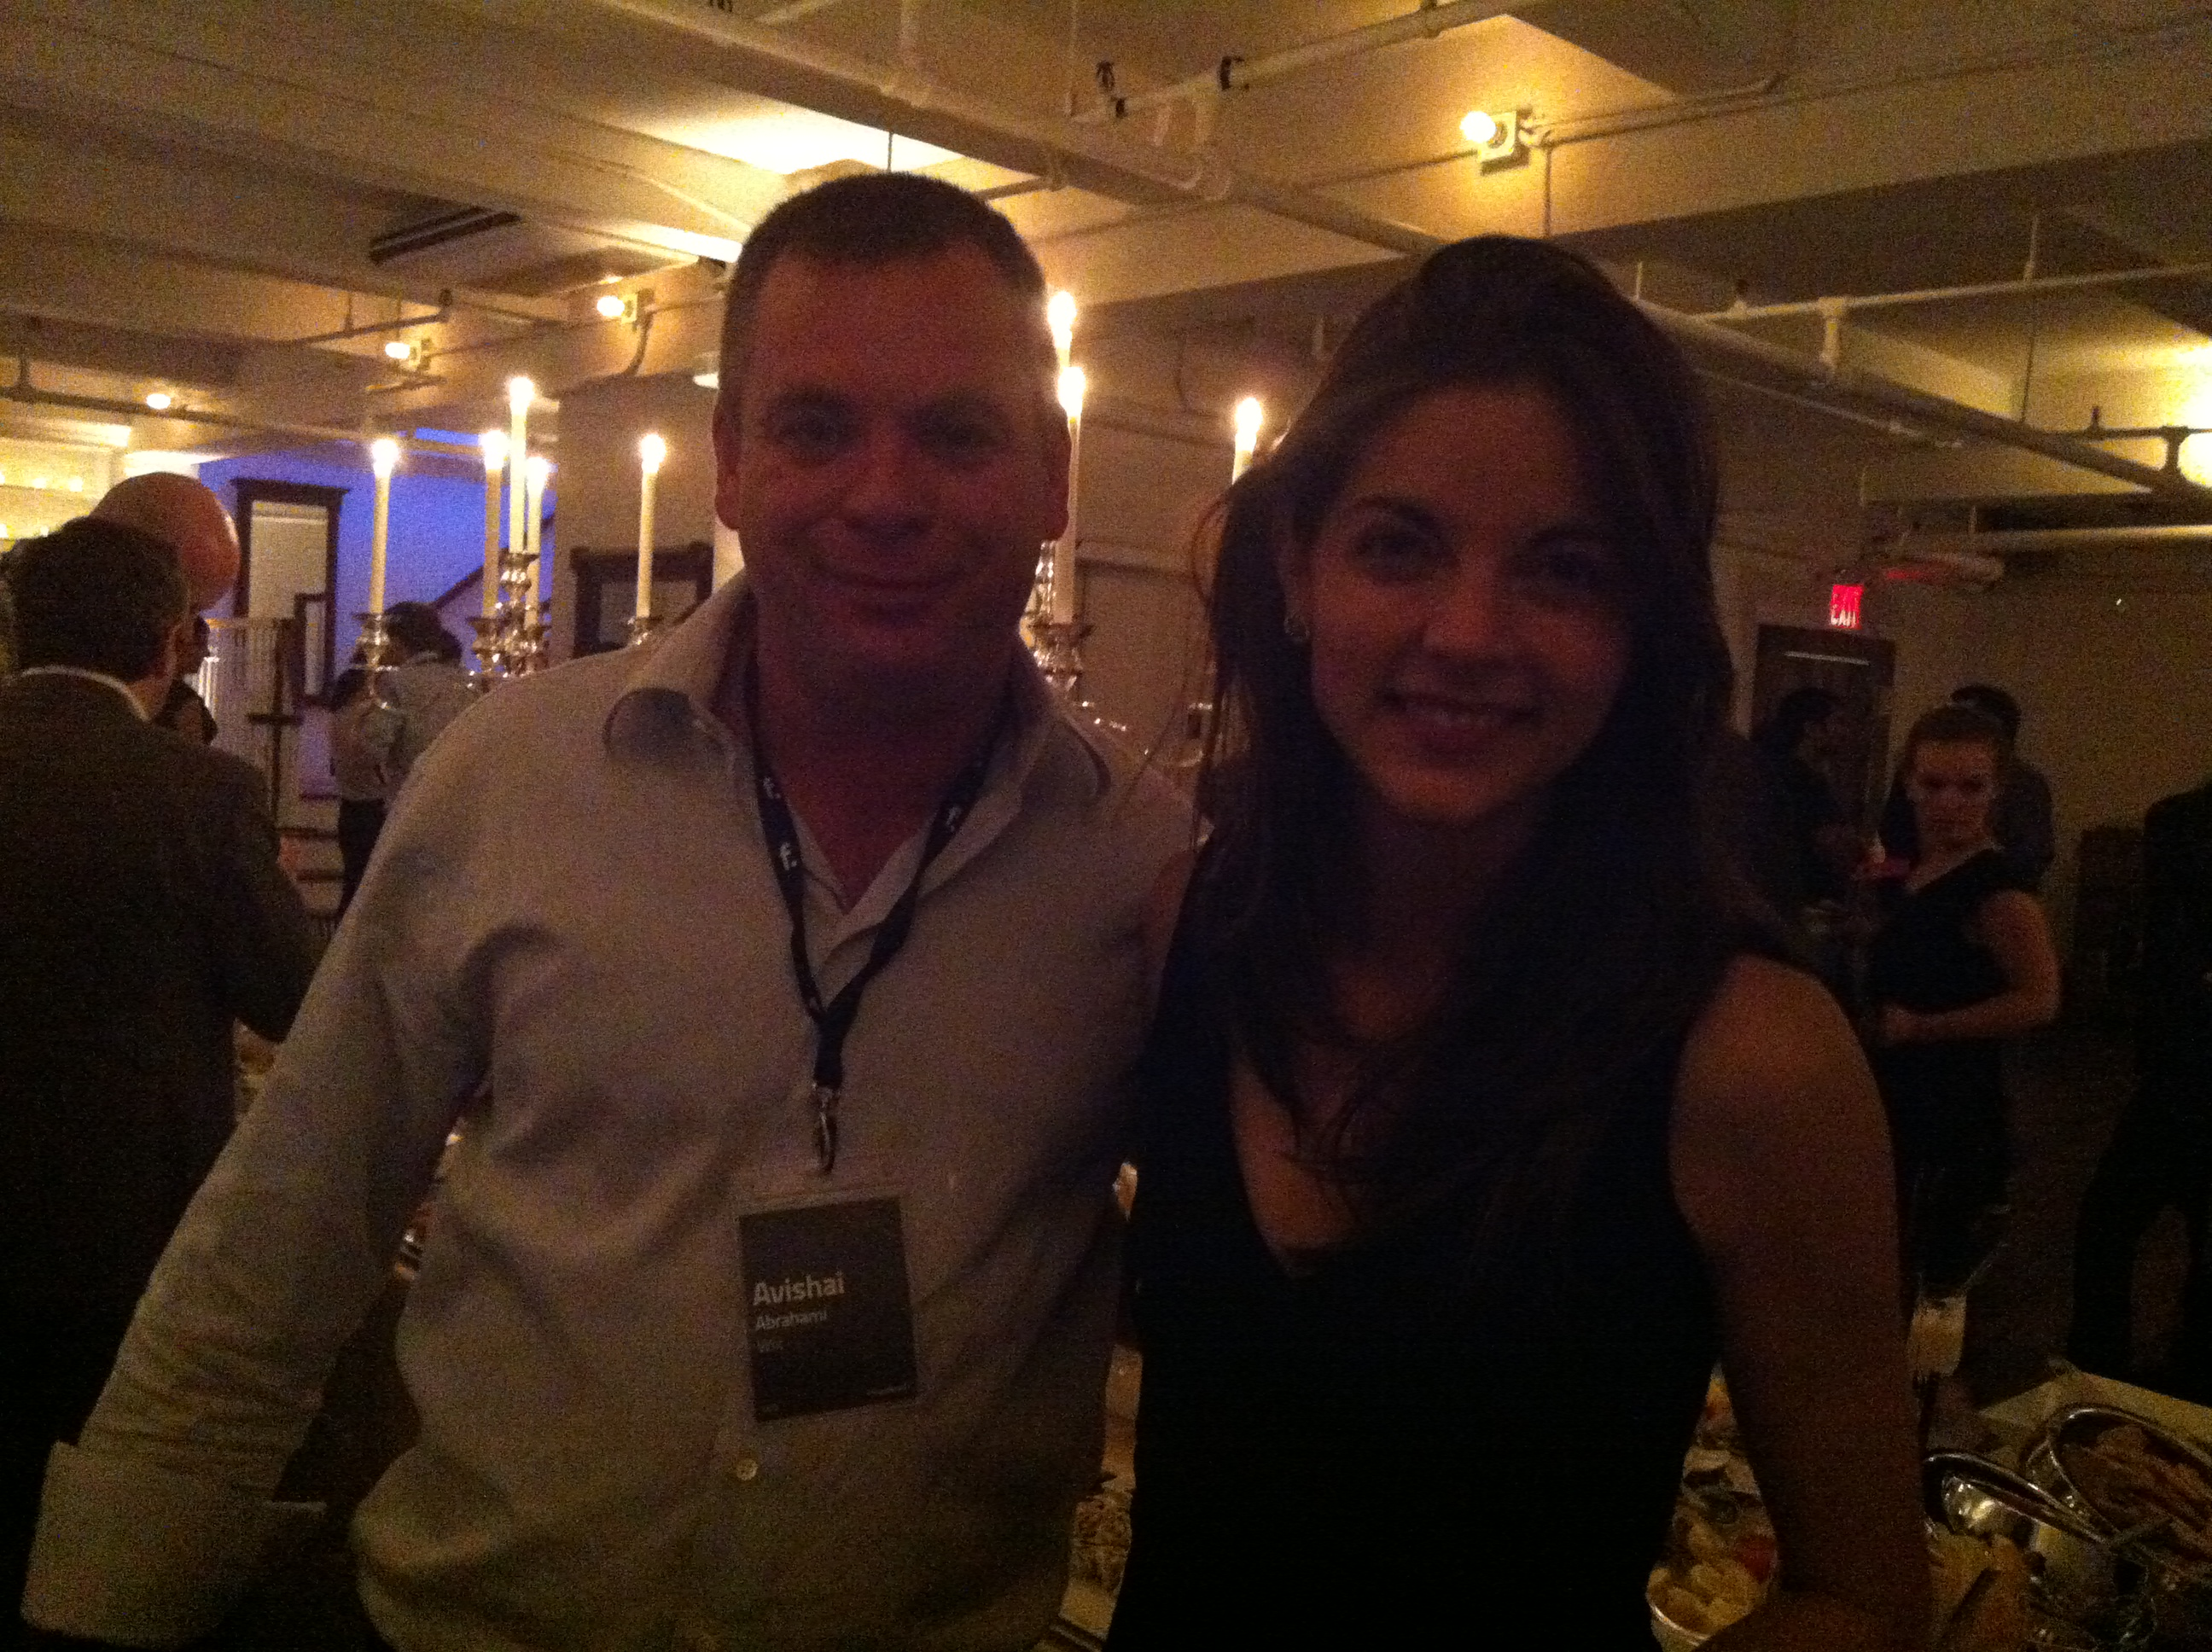 Wix Founder Avishai Abrahami with The Daily Muse Founder Kathryn Minshew at Gary's Loft at F.ounders NY 2012